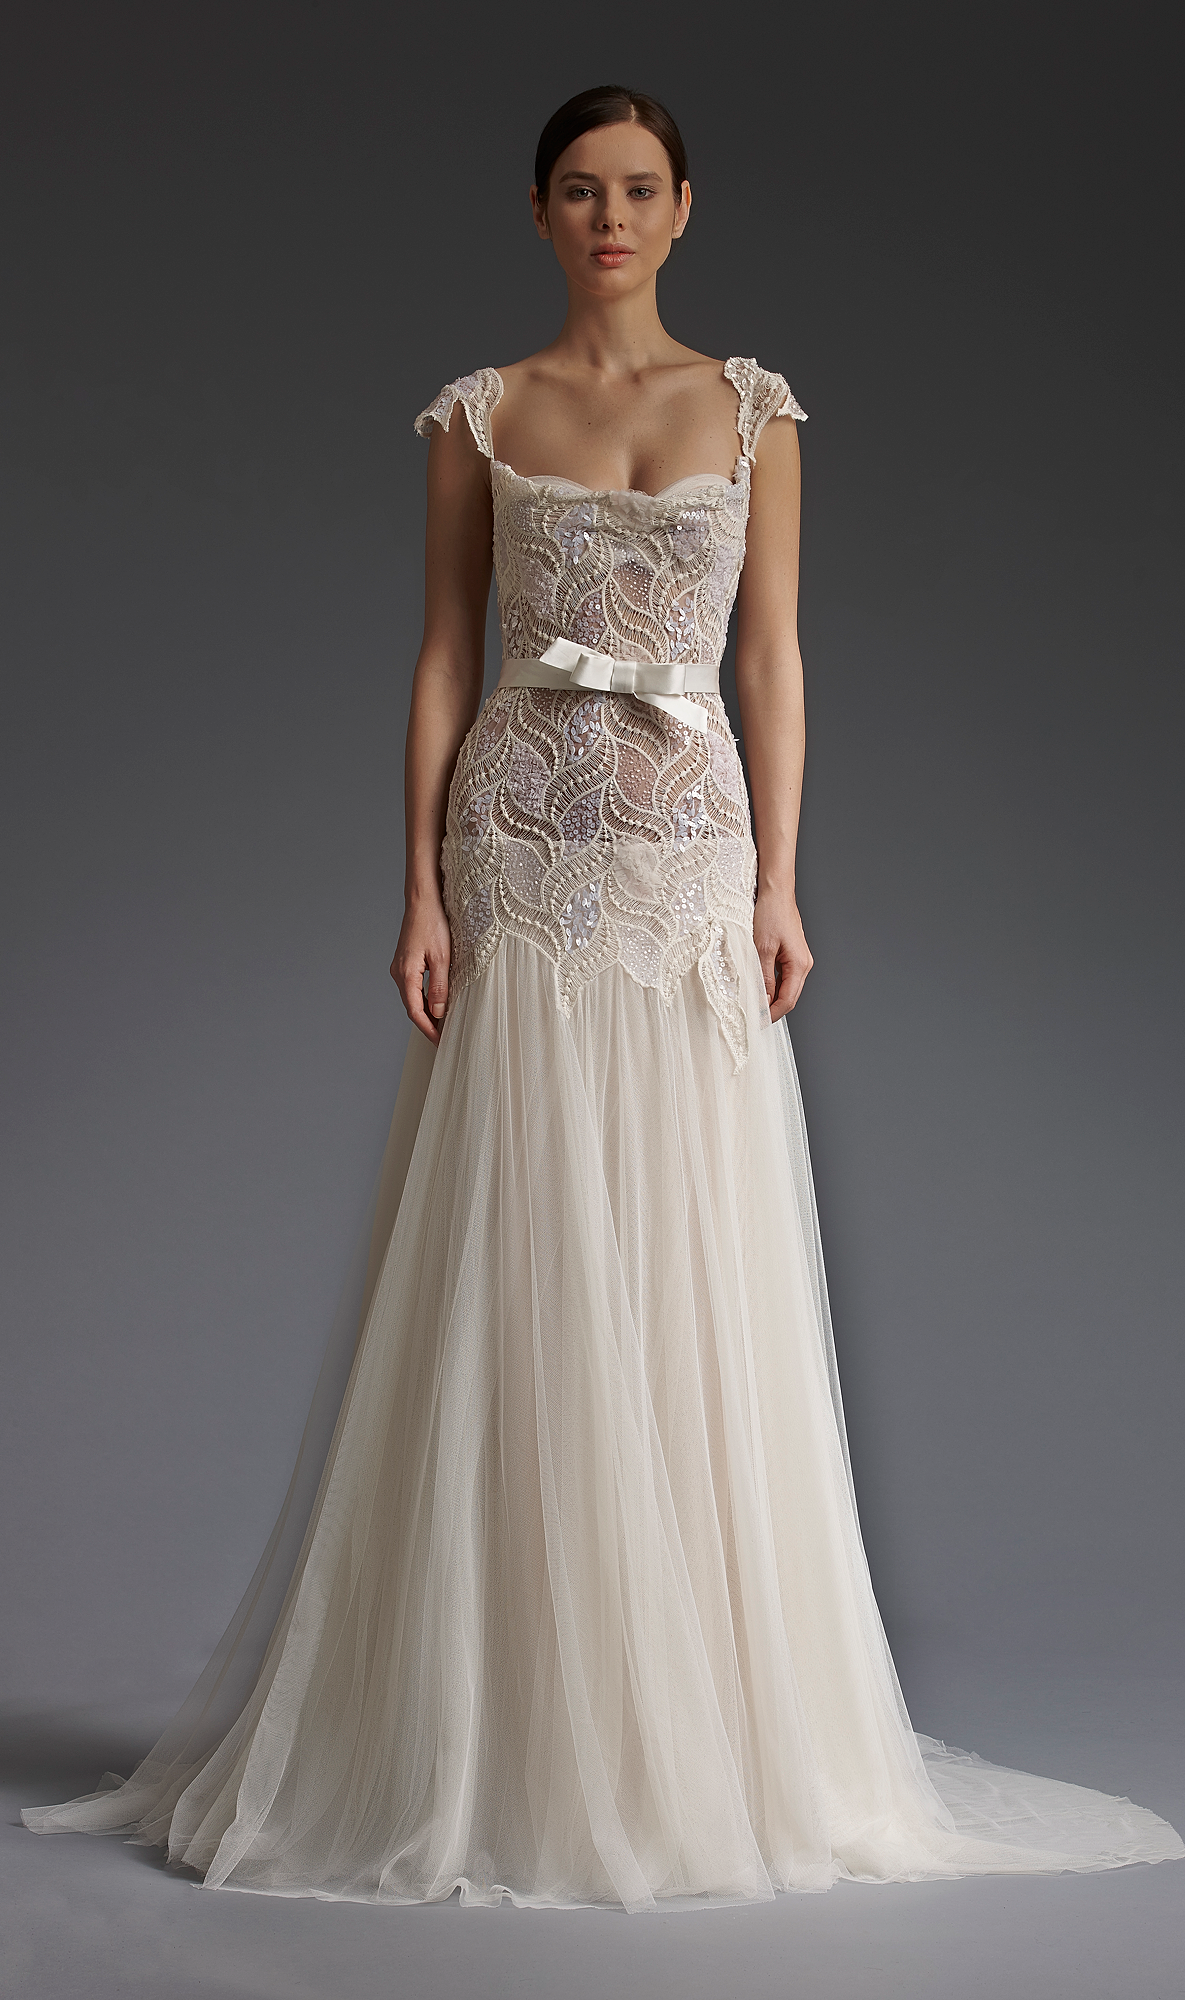 Wedding Dress Gemach New York : Victoria kyriakides